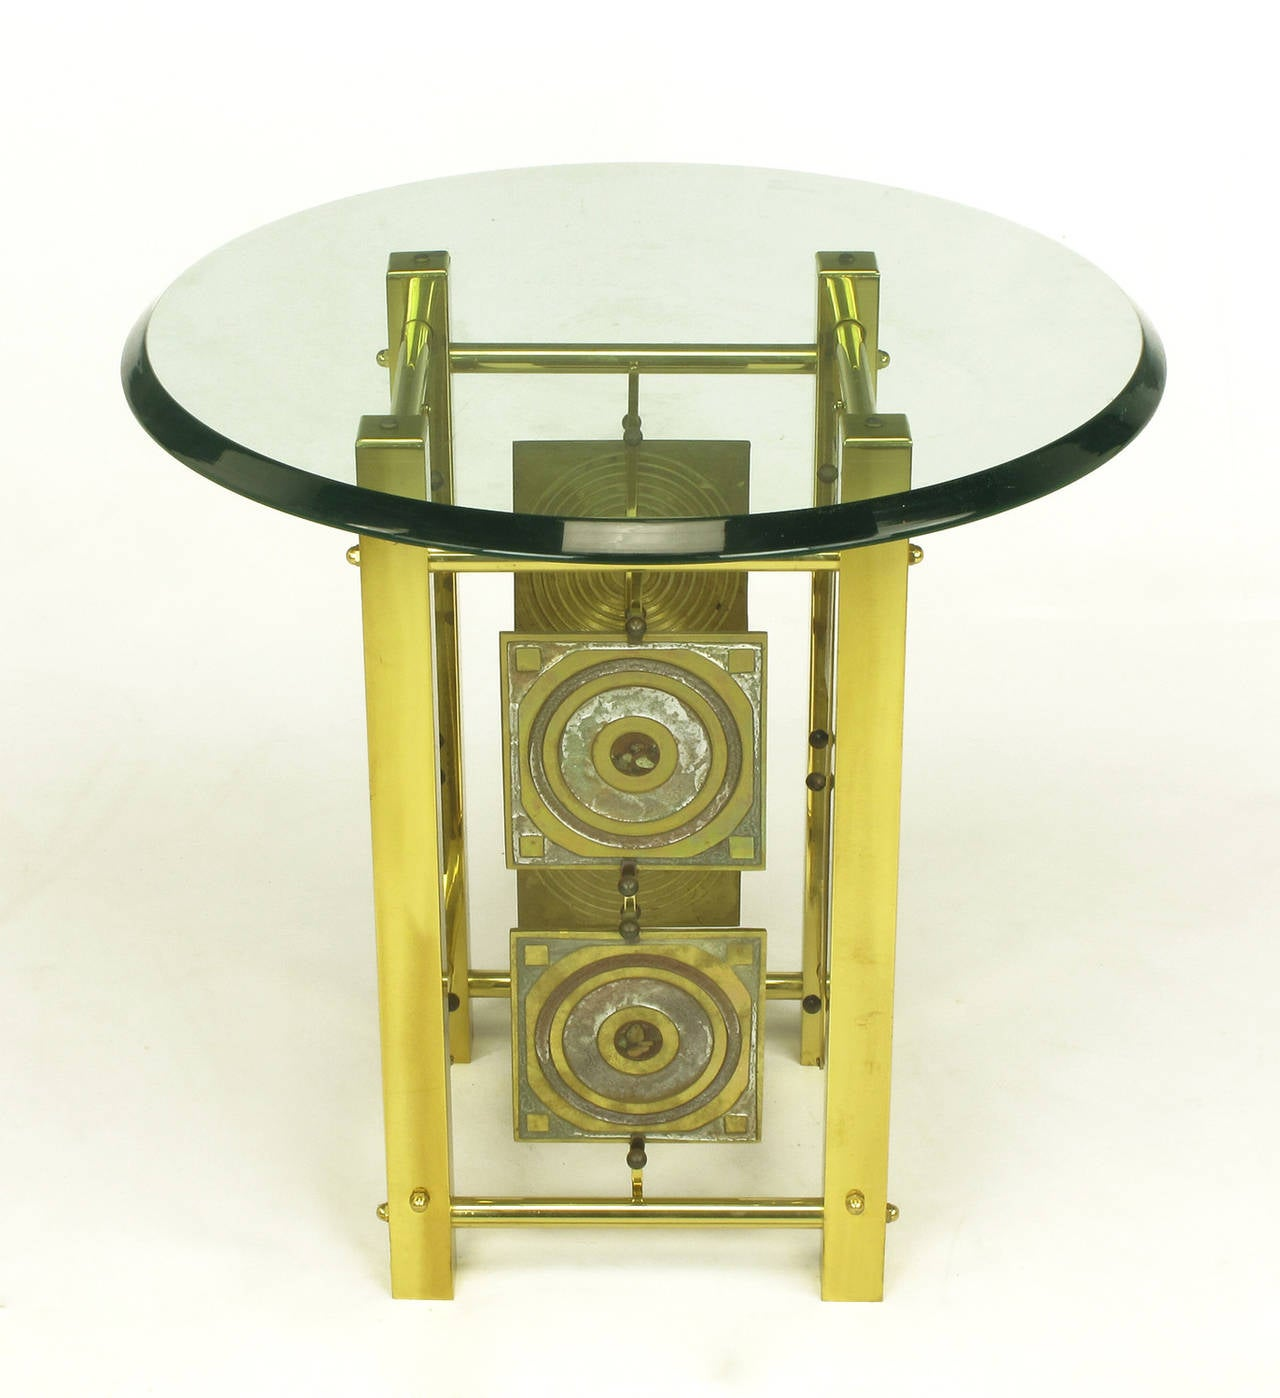 One of a kind artist studio Postmodern brass and enameled brass panel side table with glass top. Each panel was cast and enameled then suspended two to a side with brass bars and clips with brass ball detail. Similar in style to the acid etched